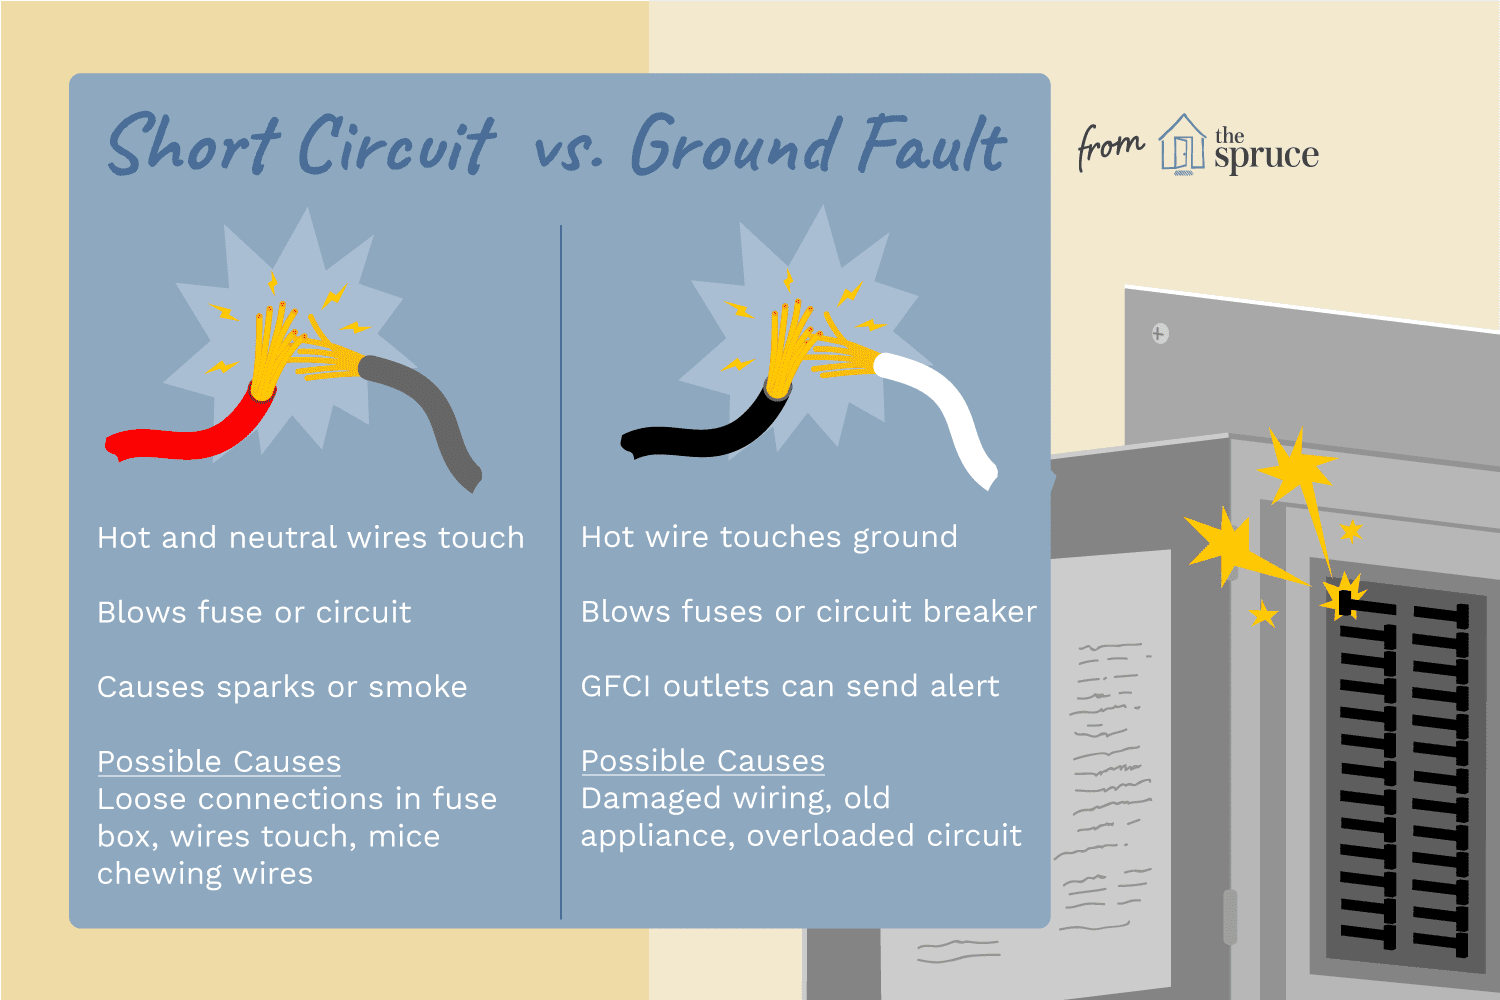 Short Circuit Vs Ground Fault Working With Solve Elec To Test Electrical Circuits Difference